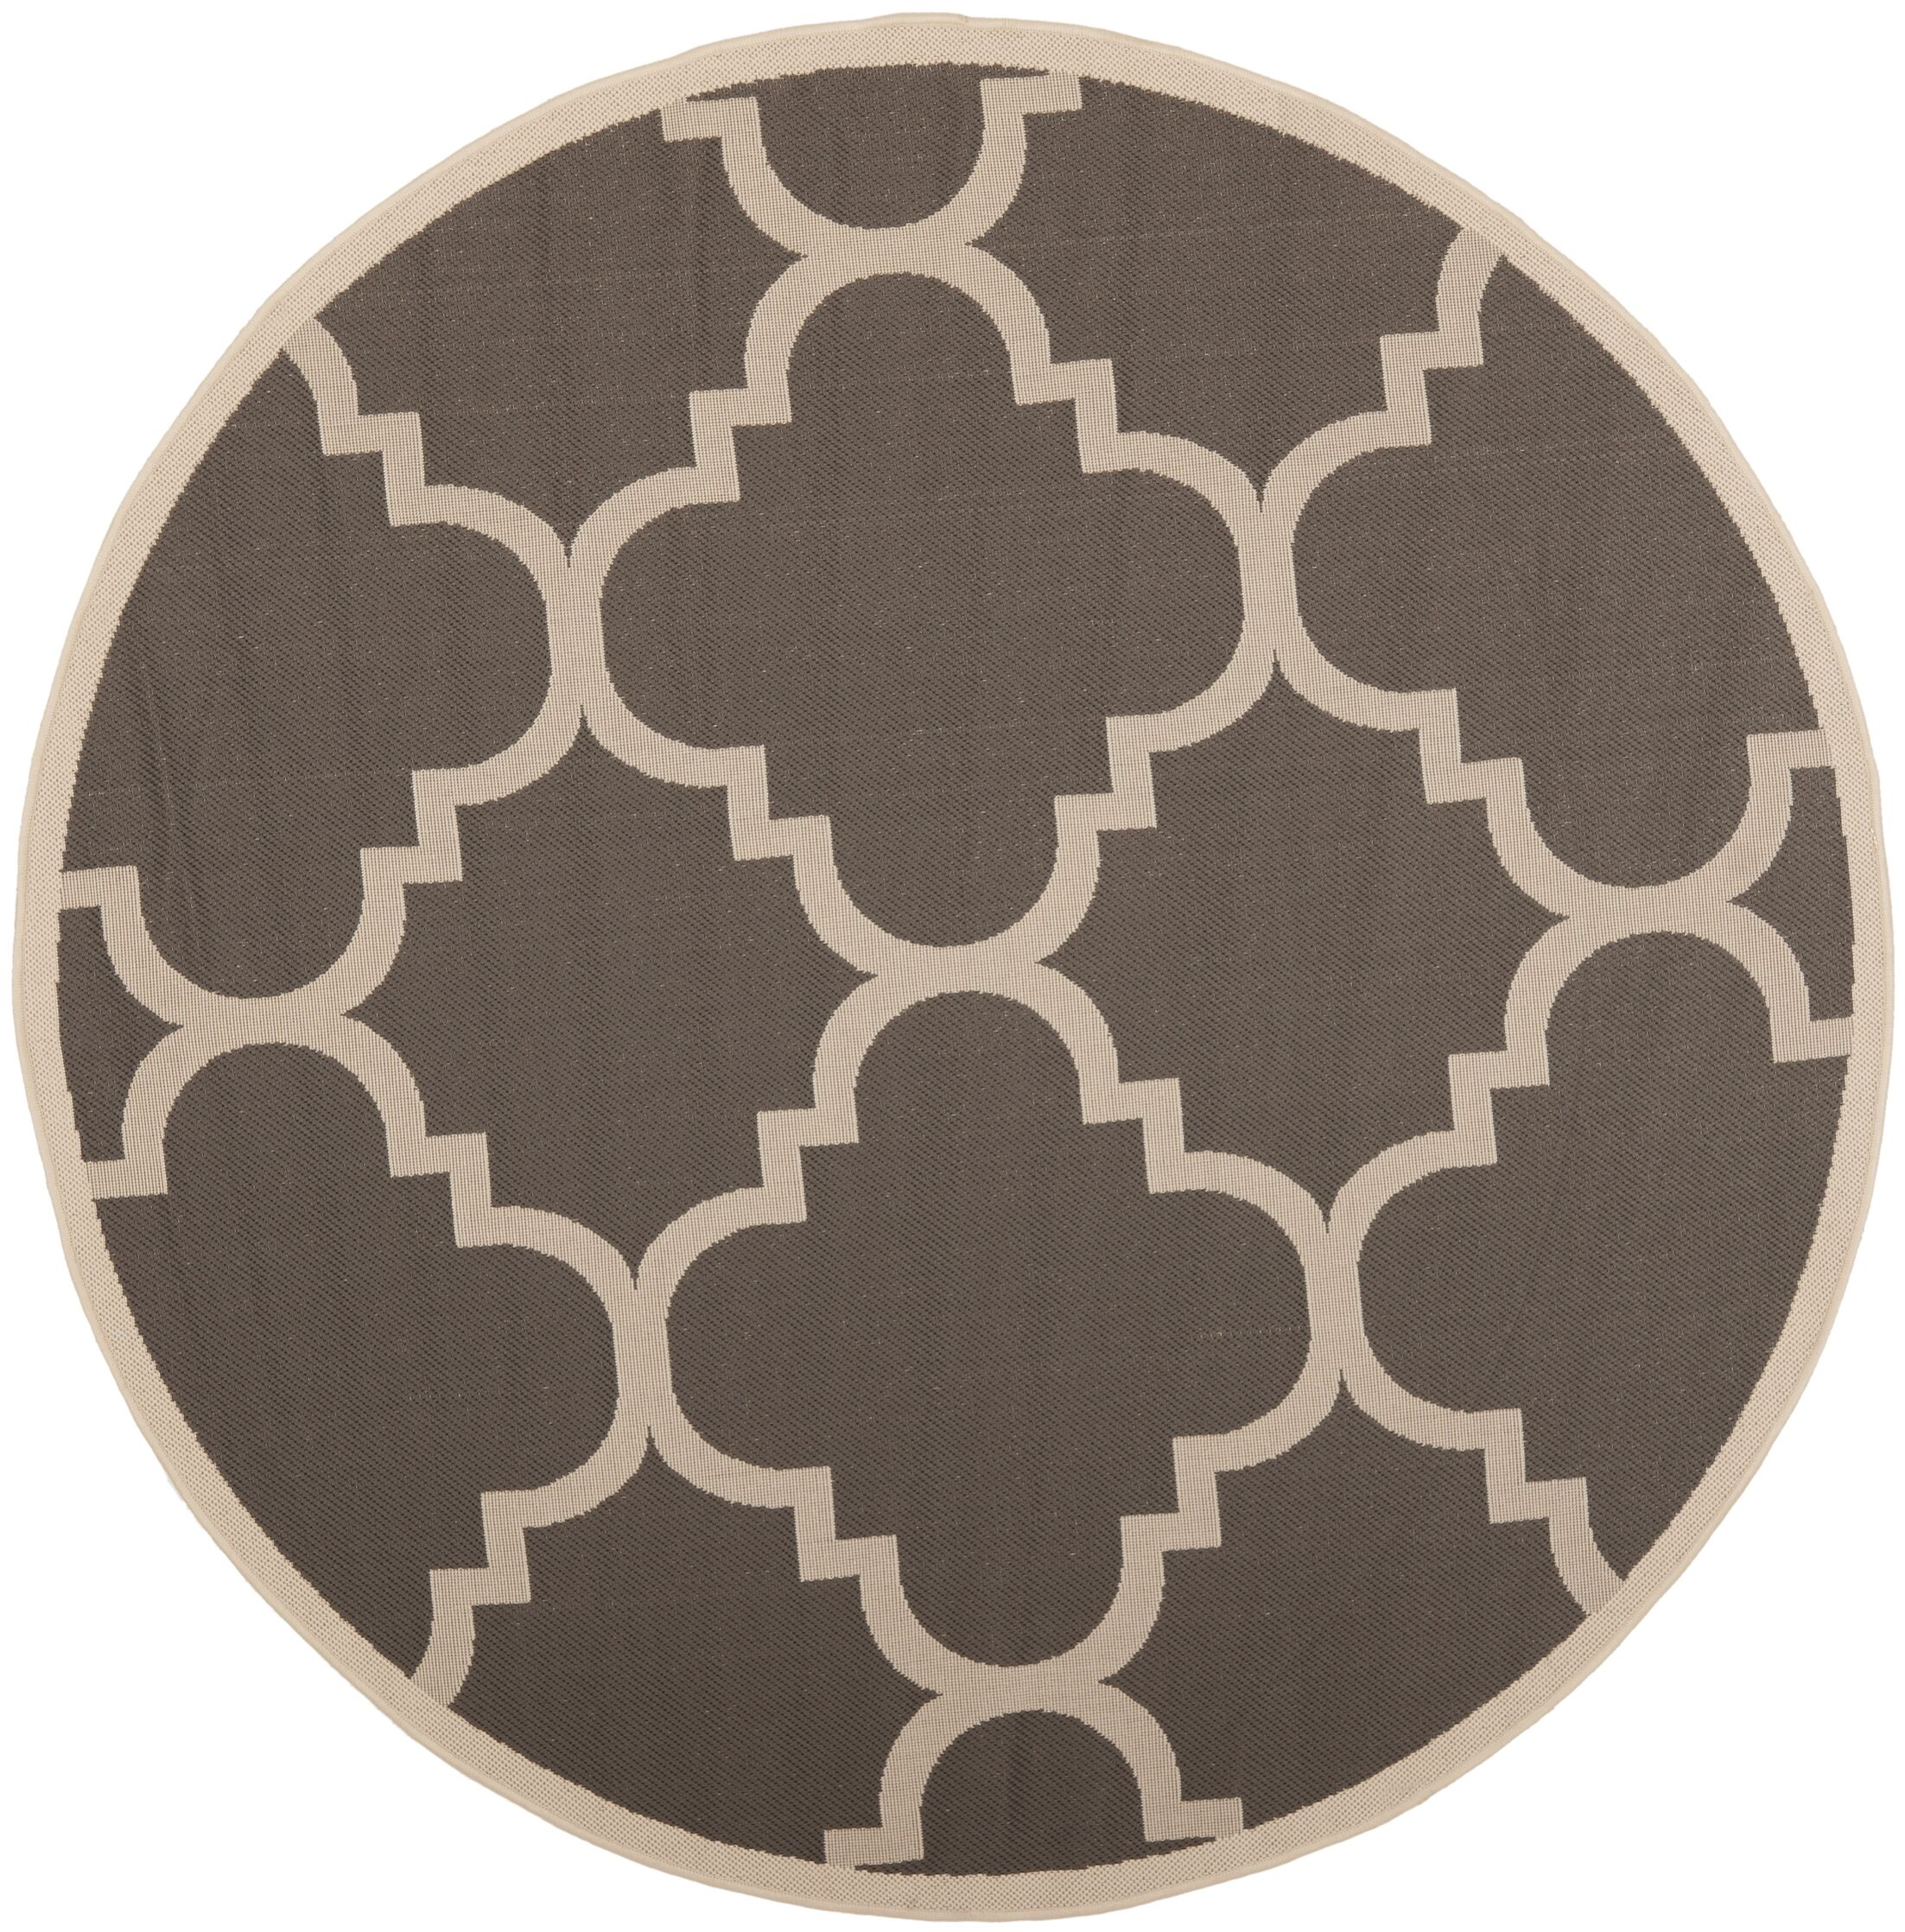 Octavius Gray/Beige Indoor/Outdoor Area Rug Rug Size: Round 5'3